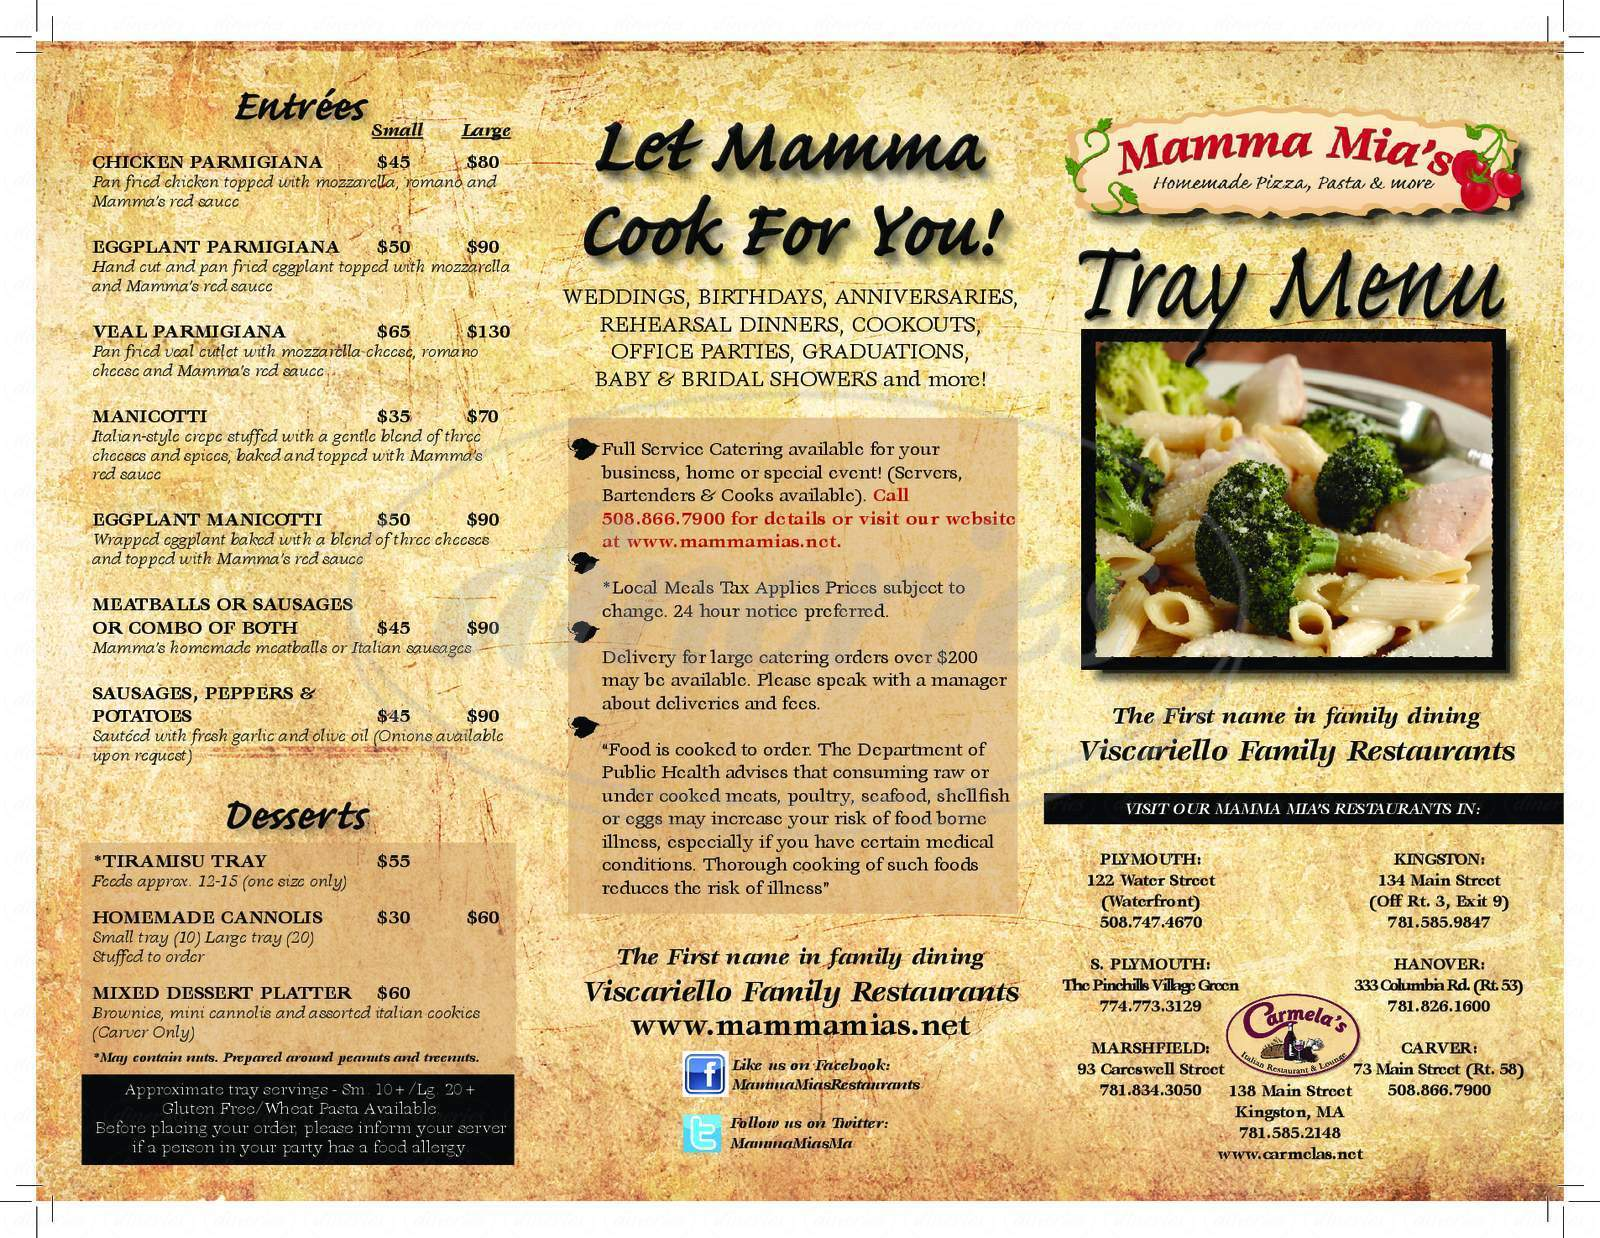 menu for Mamma Mia's